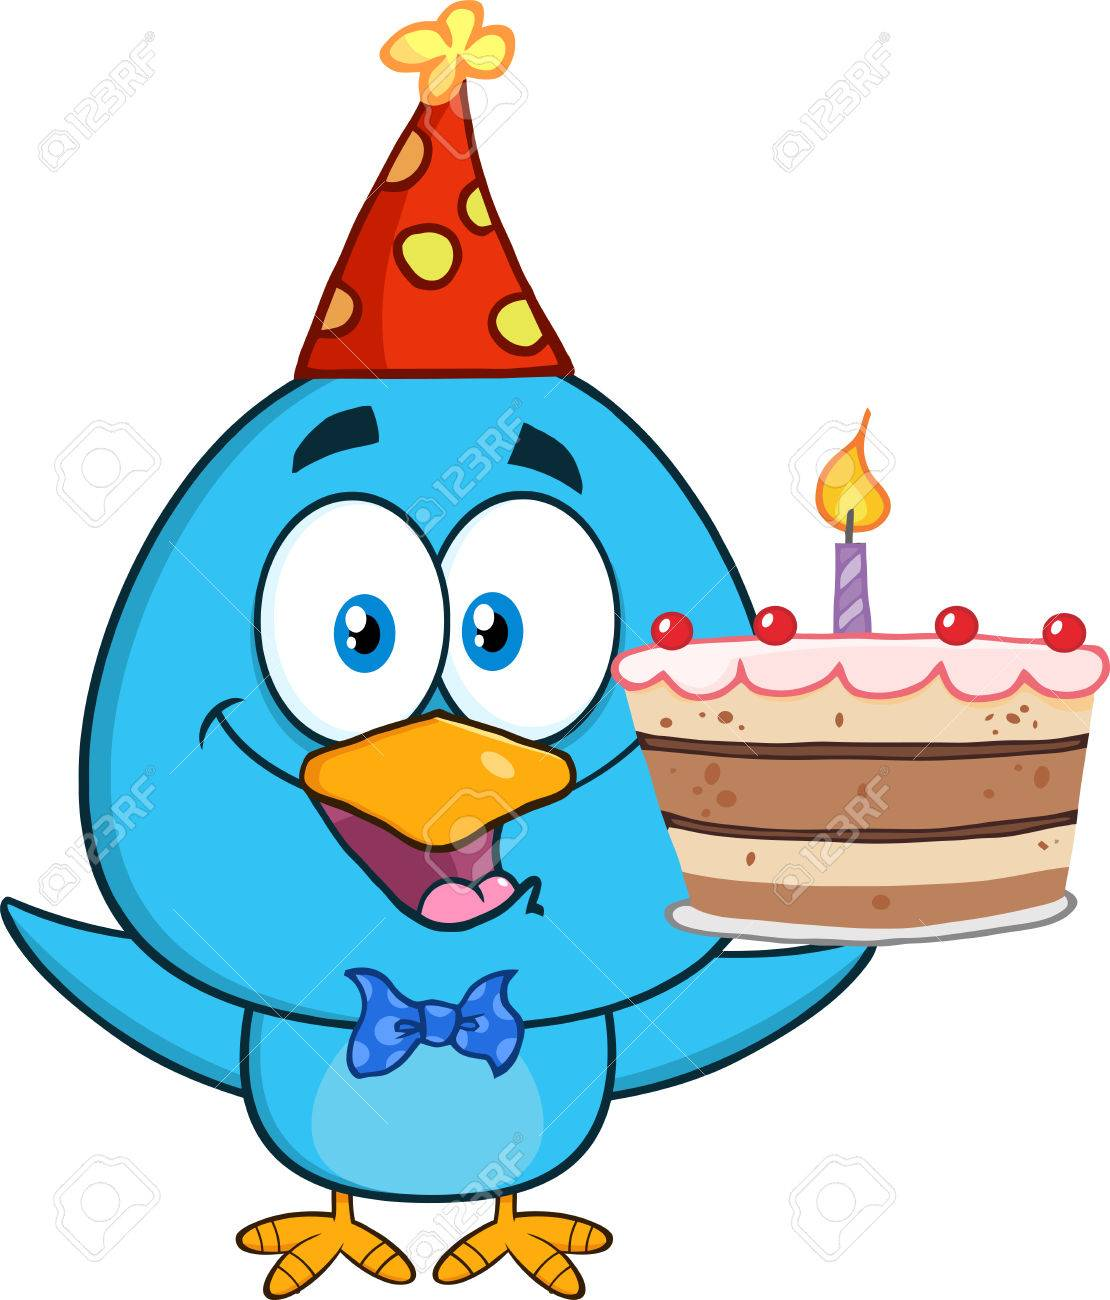 Happy Blue Bird Cartoon Character Holding Up A Birthday Cake Stock Photo